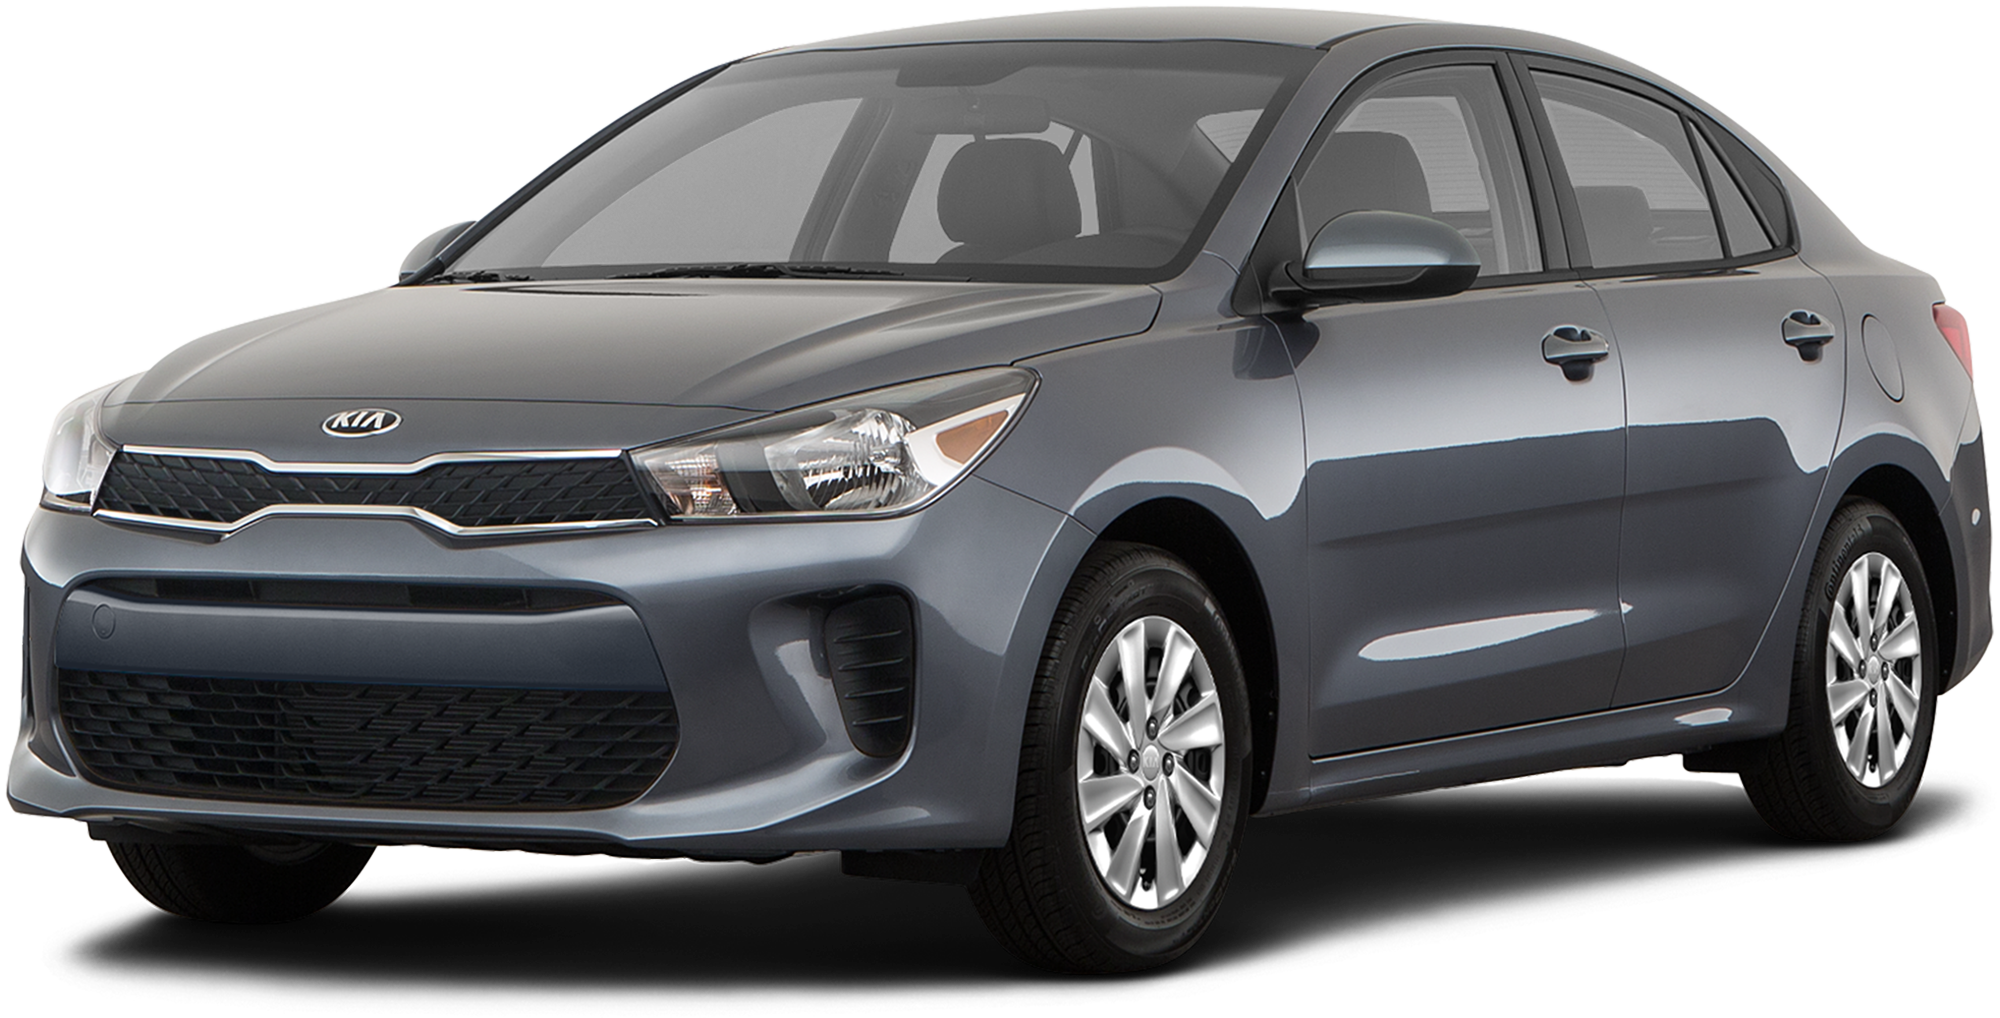 2020 Kia Rio Incentives, Specials & Offers in Orchard Park NY